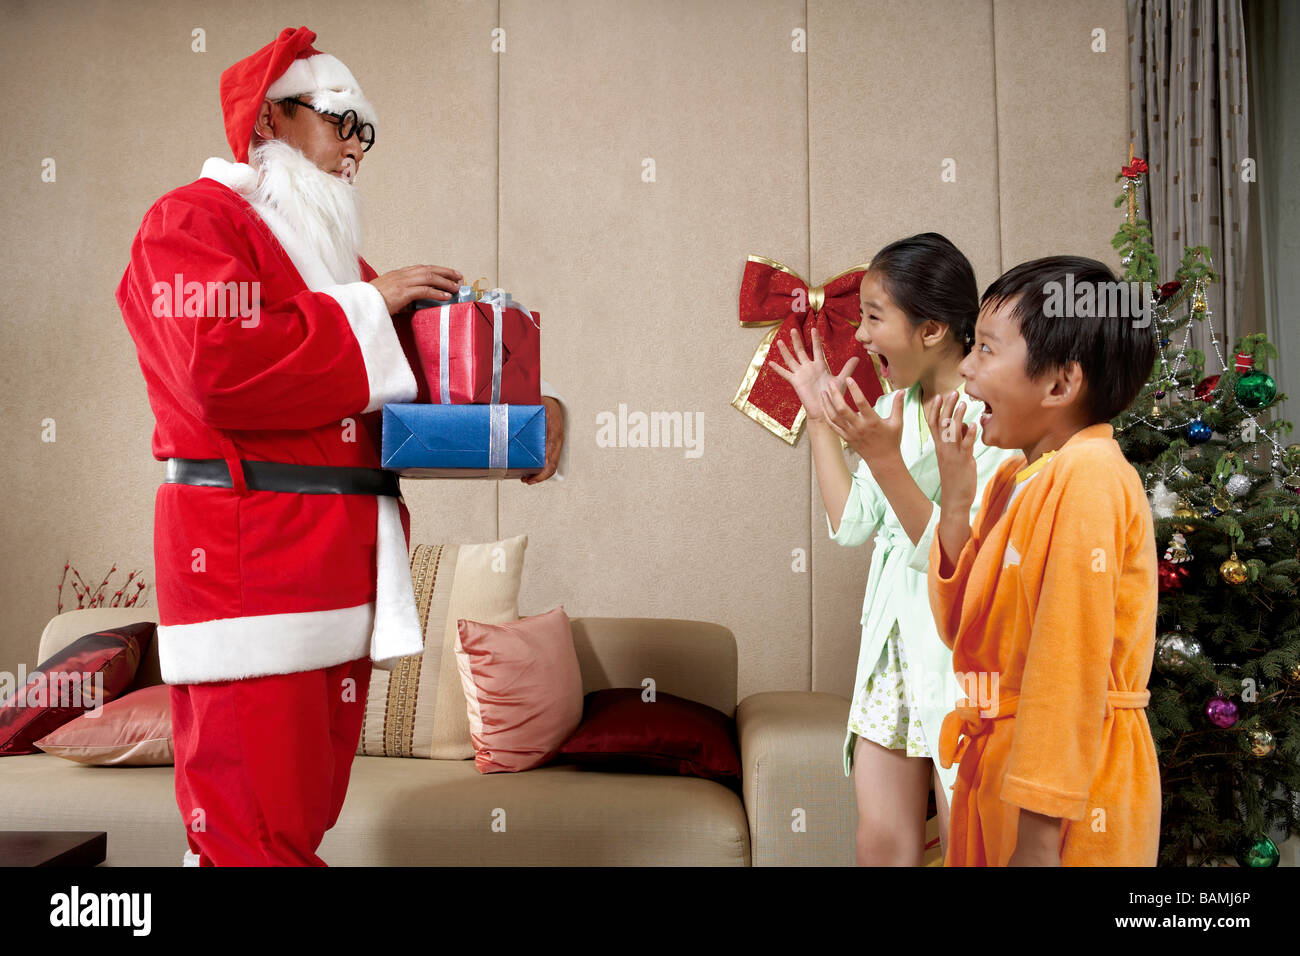 0846ea3e4086c Gift Delighted Happy Giving Surprise Stock Photos   Gift Delighted ...